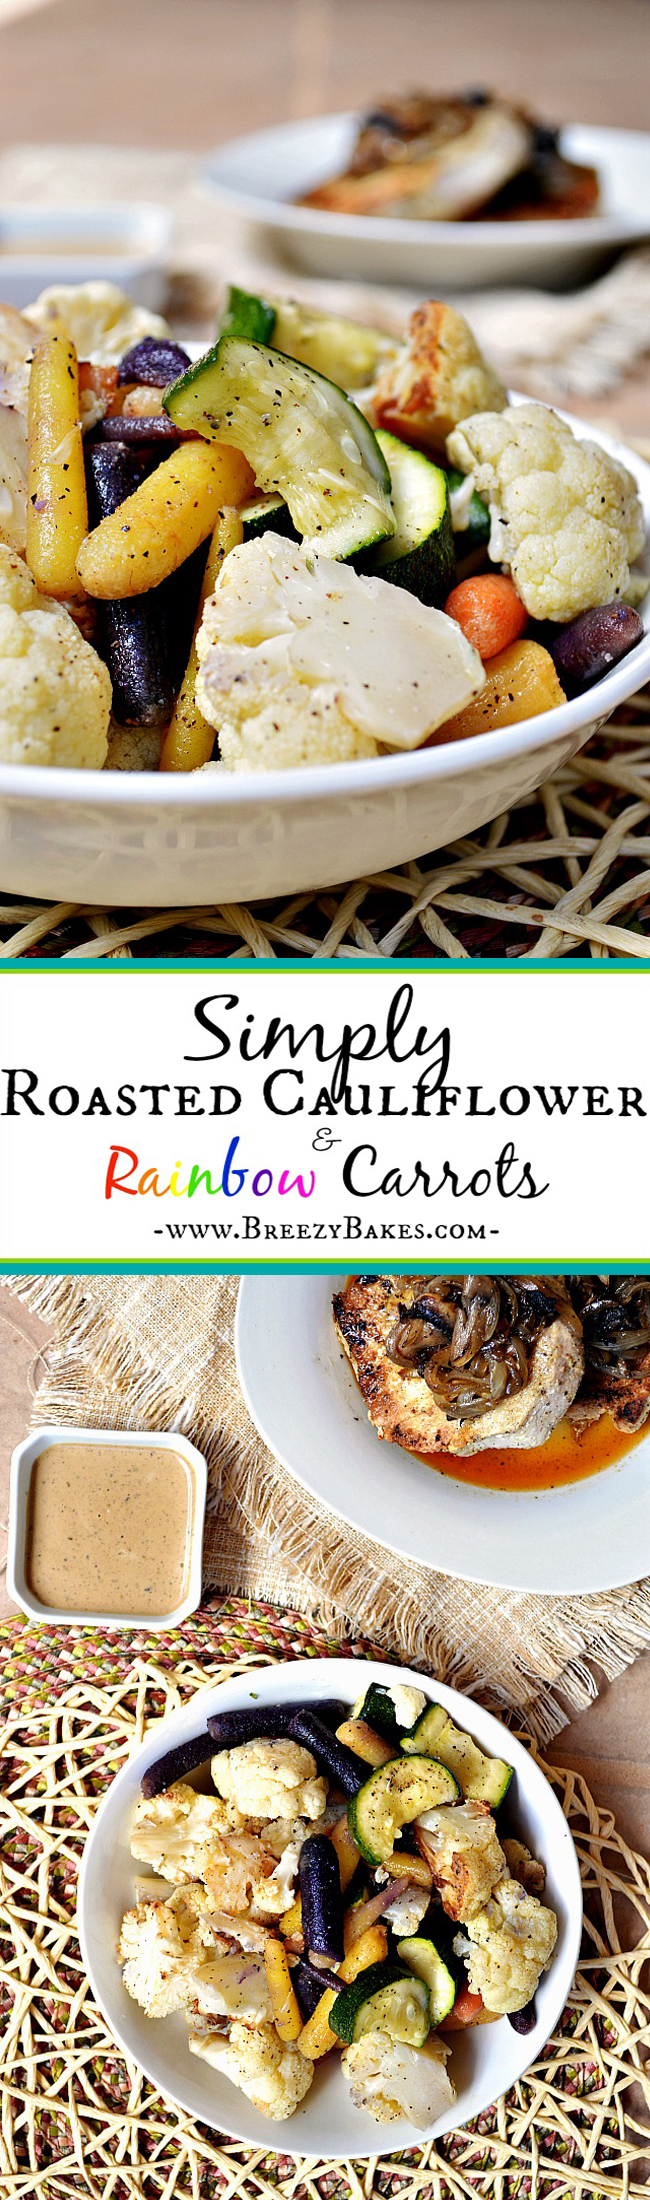 In need of a simple, savory side dish with robust flavor??? Bake up these Simply Roasted Cauliflower and Rainbow Carrots in no time, all while adding elegance to your main dish.